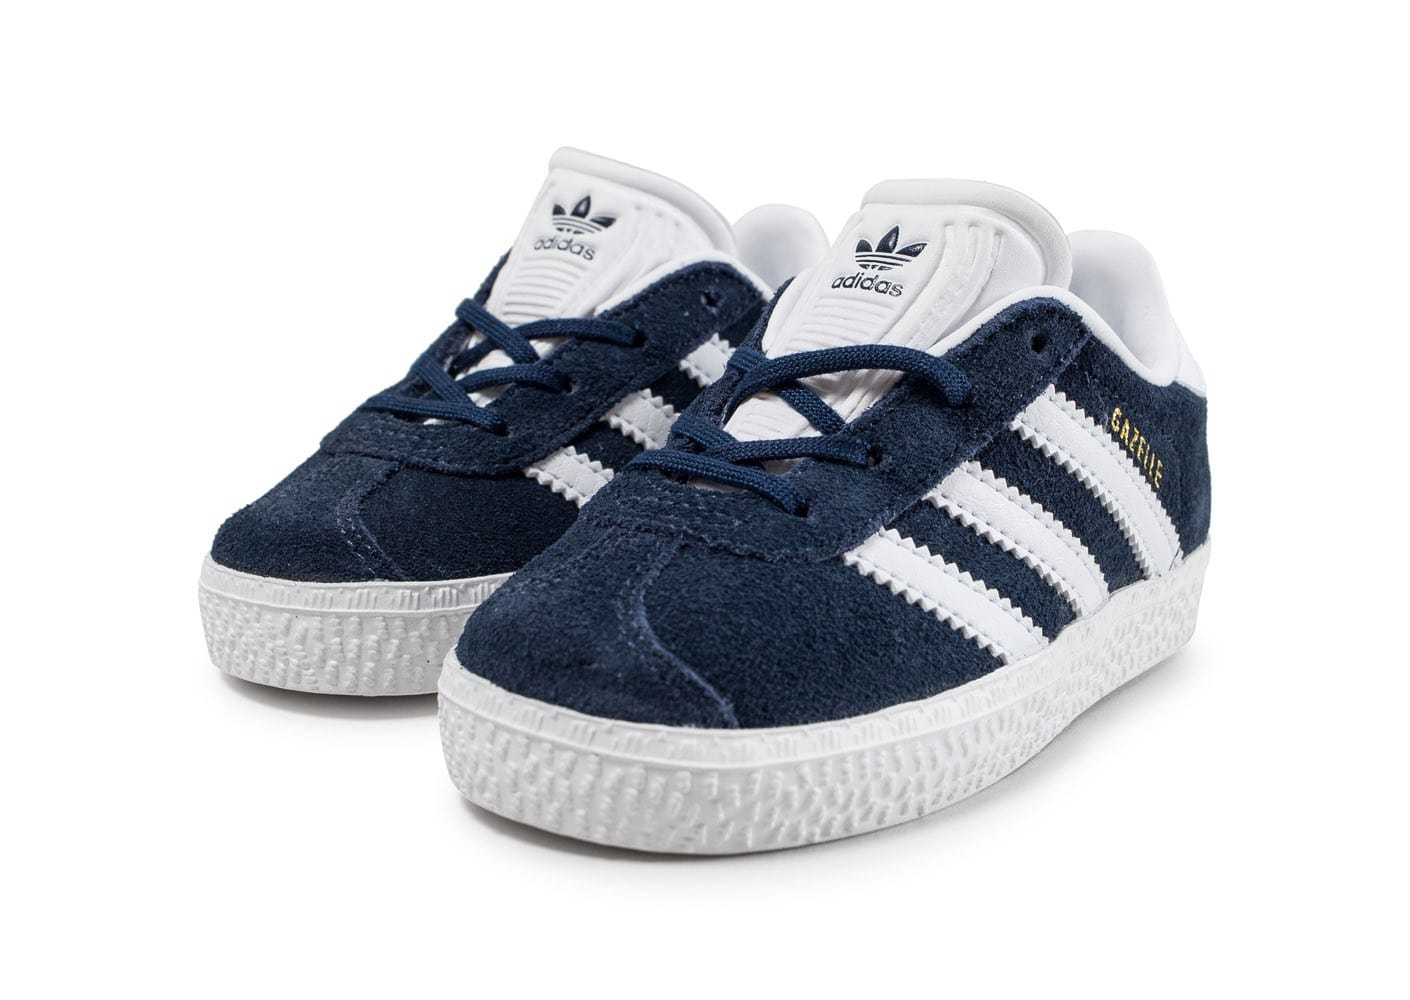 adidas gazelle b b bleu marine chaussures adidas chausport. Black Bedroom Furniture Sets. Home Design Ideas